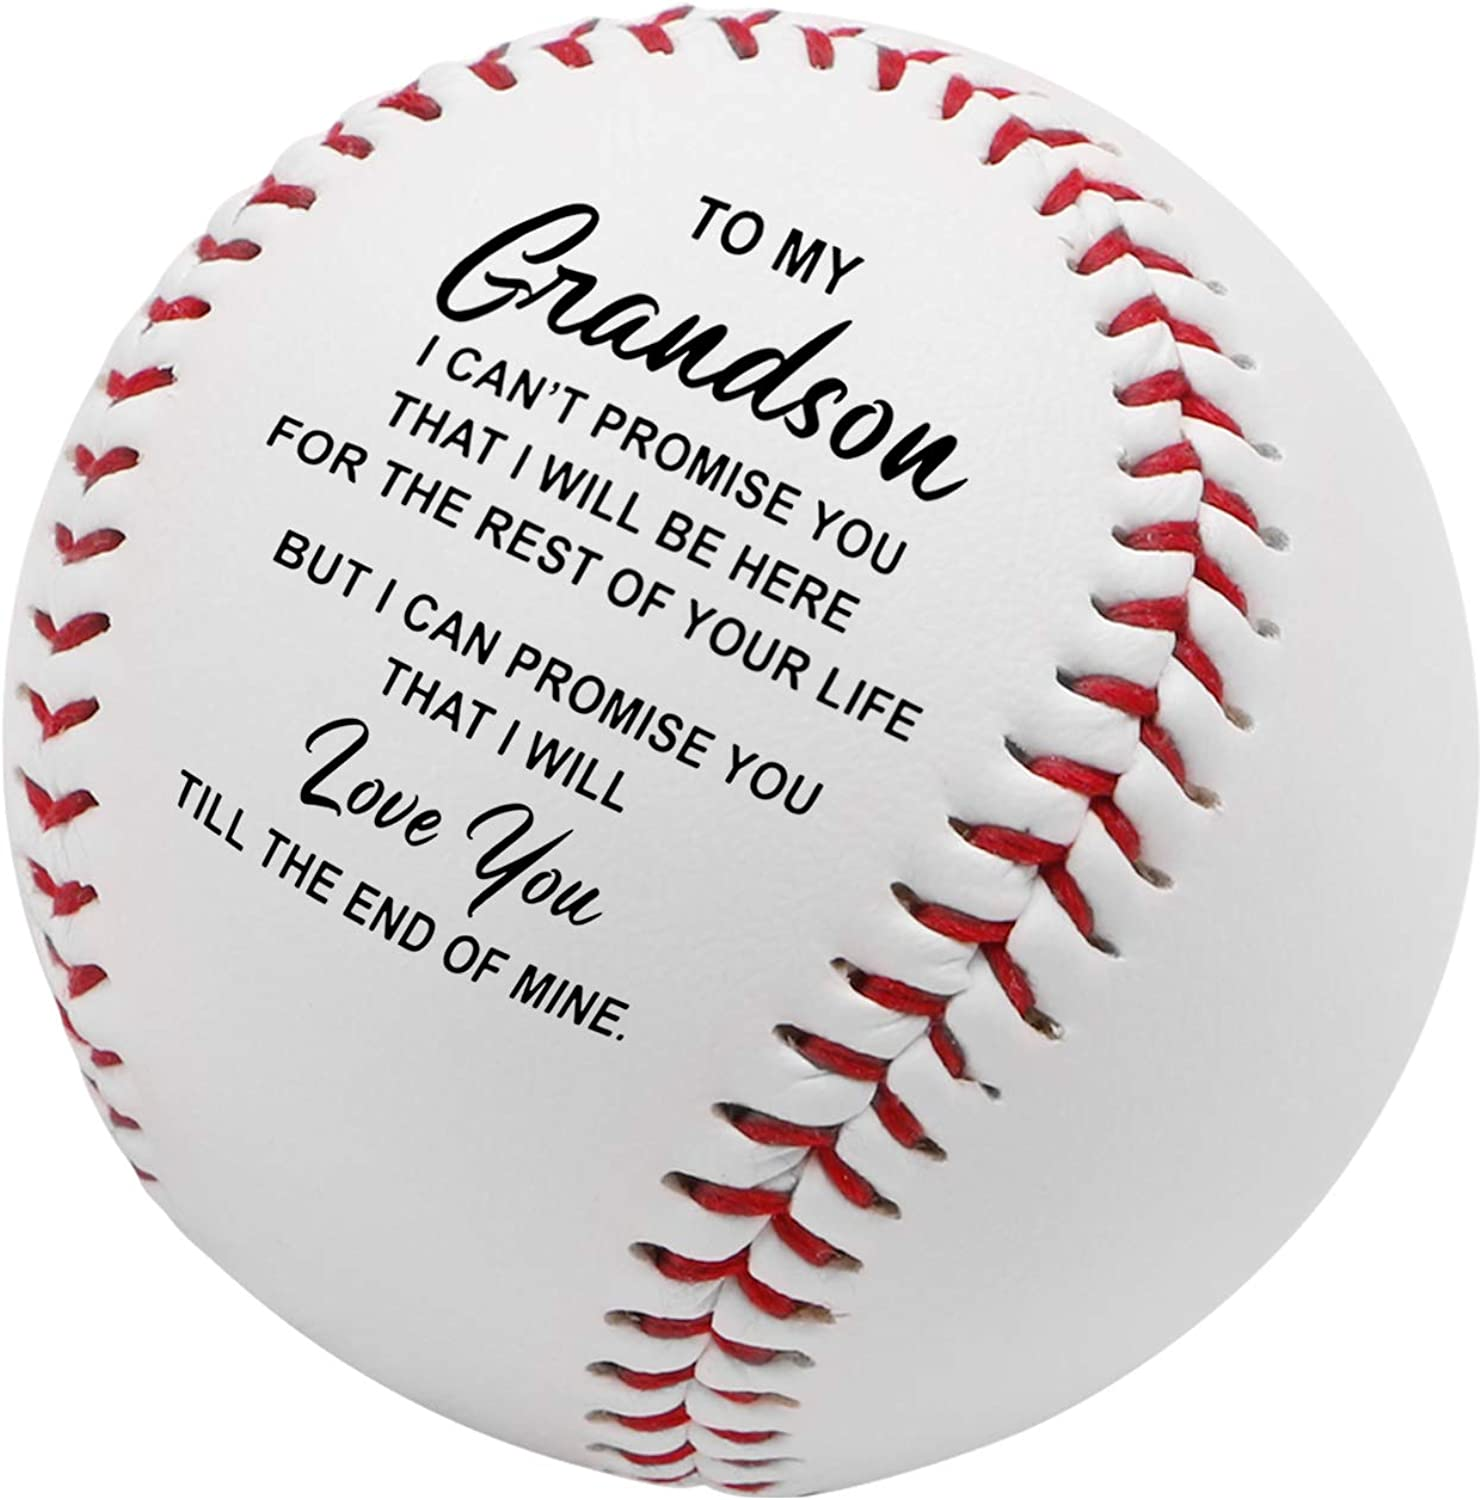 from Dad K KENON Personalized Printed Baseball for Son Enioy The Ride and Never Forget Your Way Back Home for Son Graduation Gift from Mom